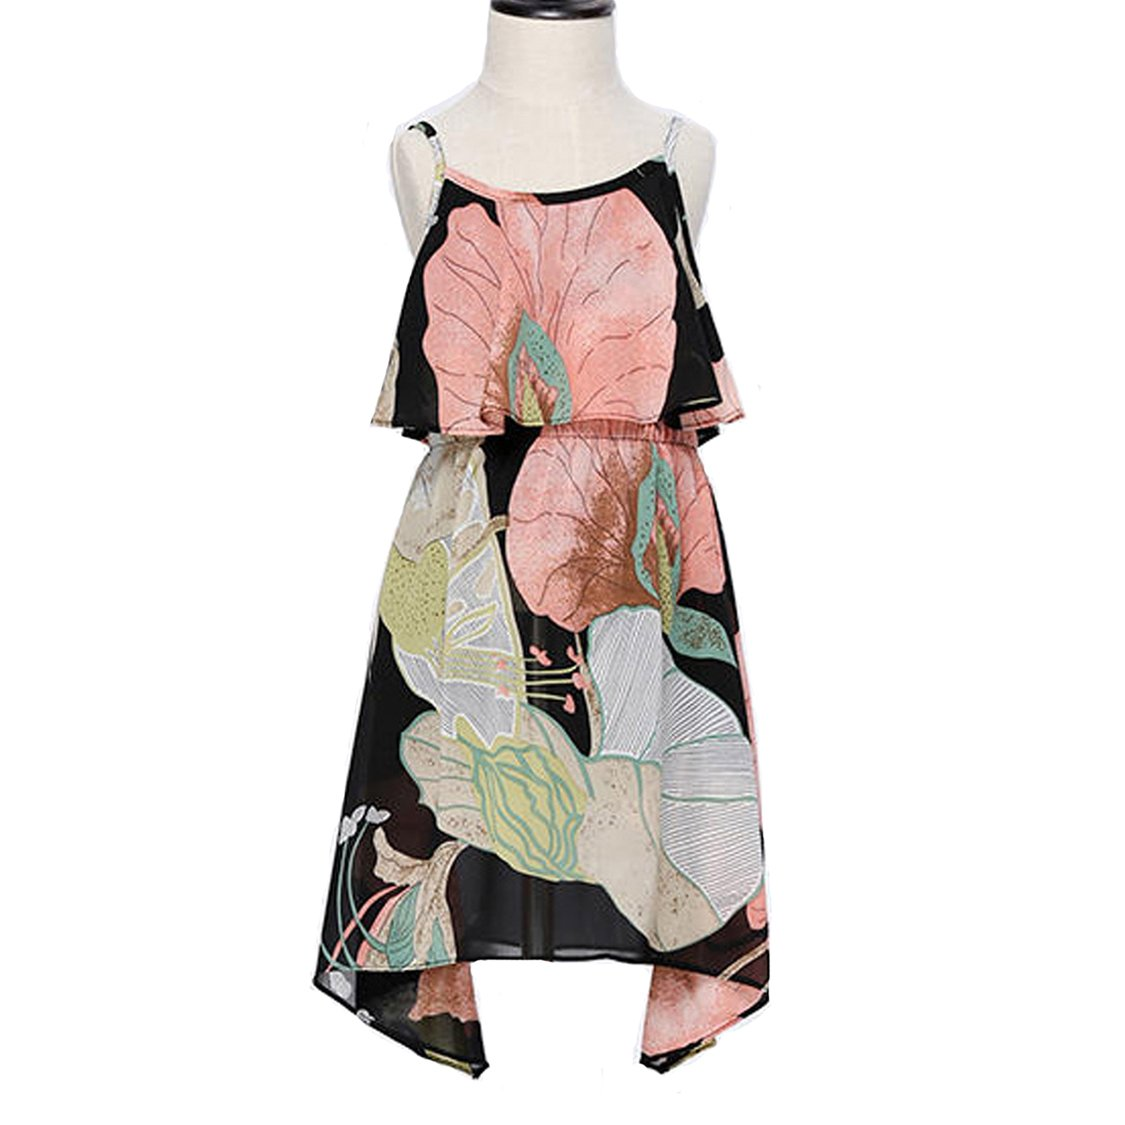 PopReal Mom and Girl Cute Shoulder-Straps Off Shoulder Floral Printed Chiffon Casual Playwear Dress by PopReal (Image #2)